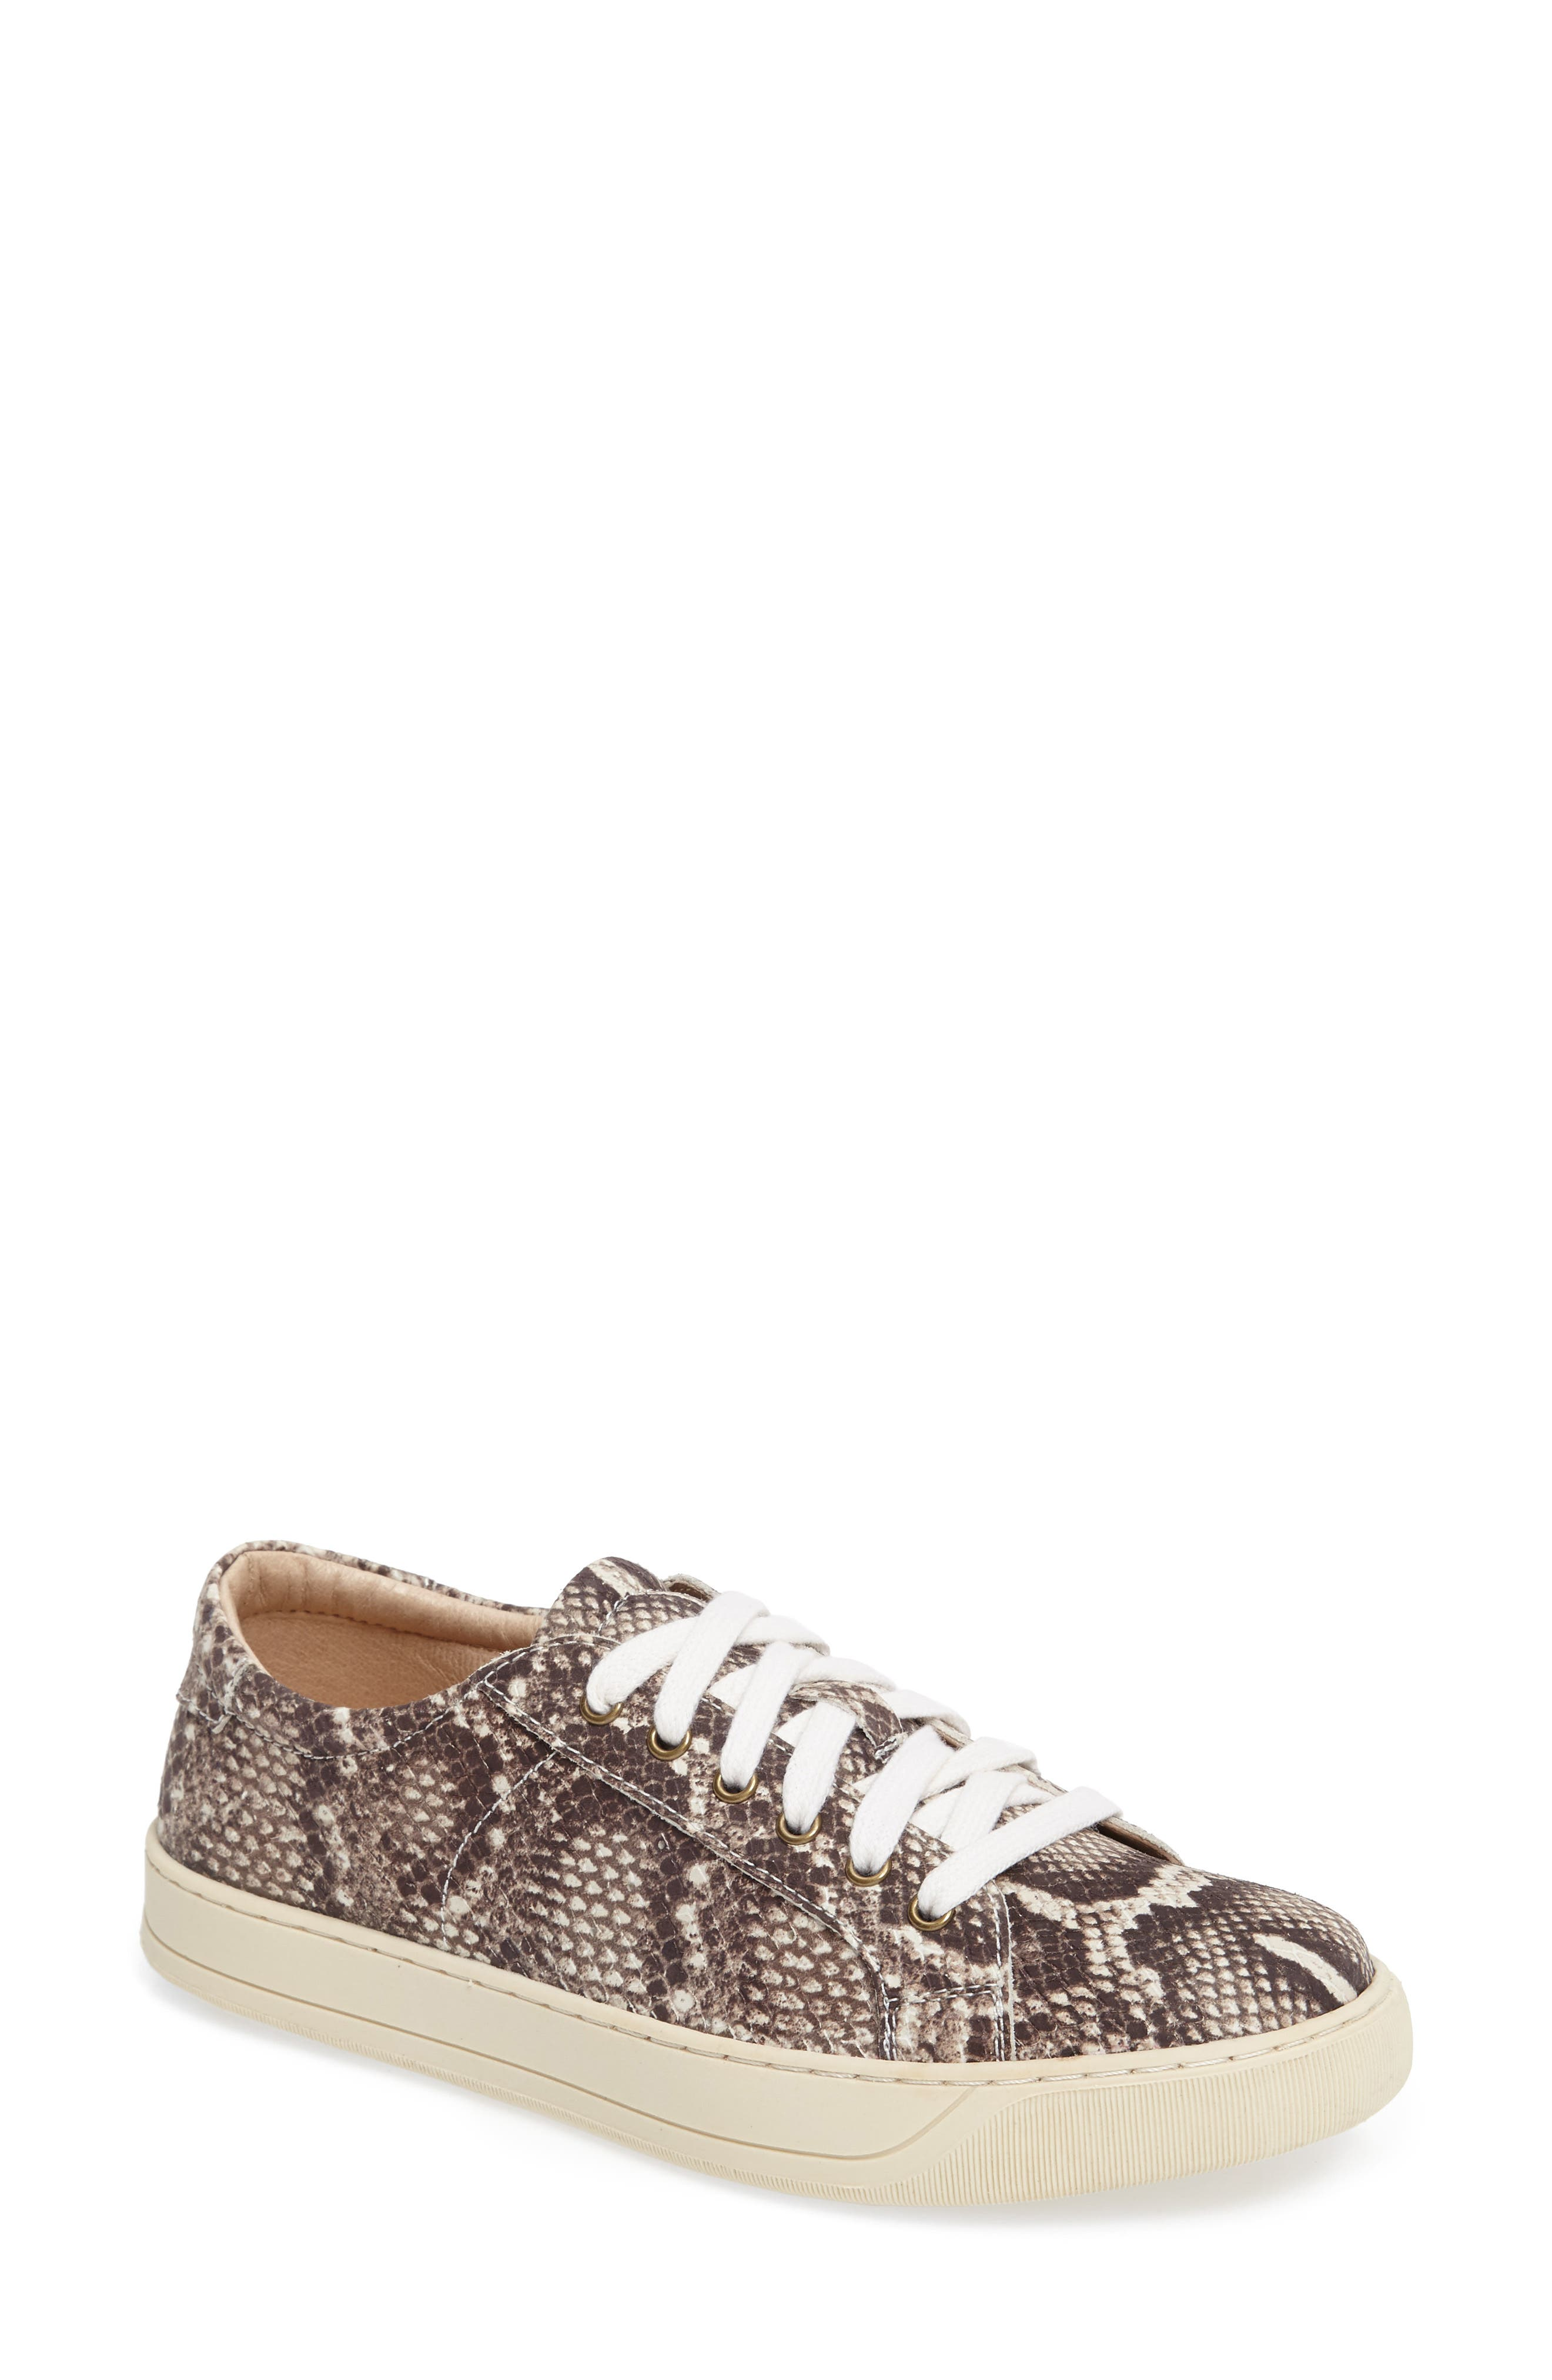 Johnston & Murphy 'Emerson' Sneaker (Women)